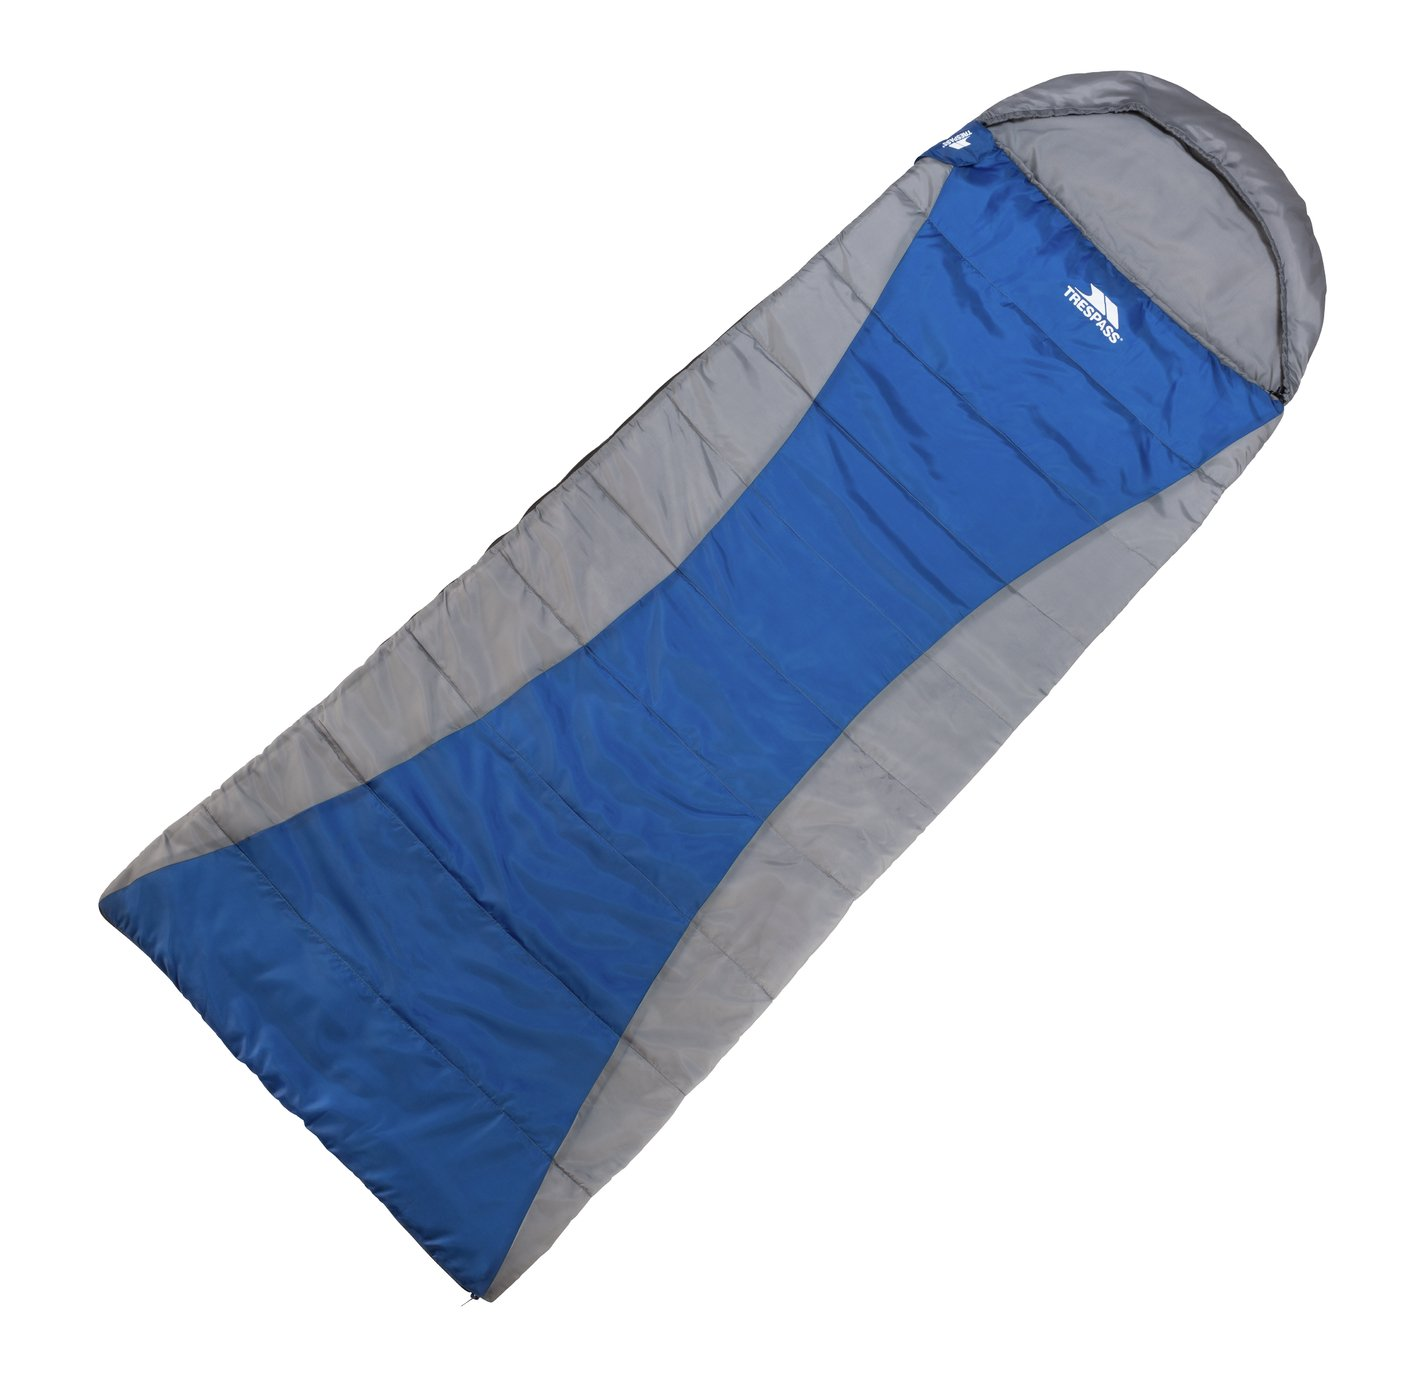 Trespass 300GSM Envelope Cowl Sleeping Bag